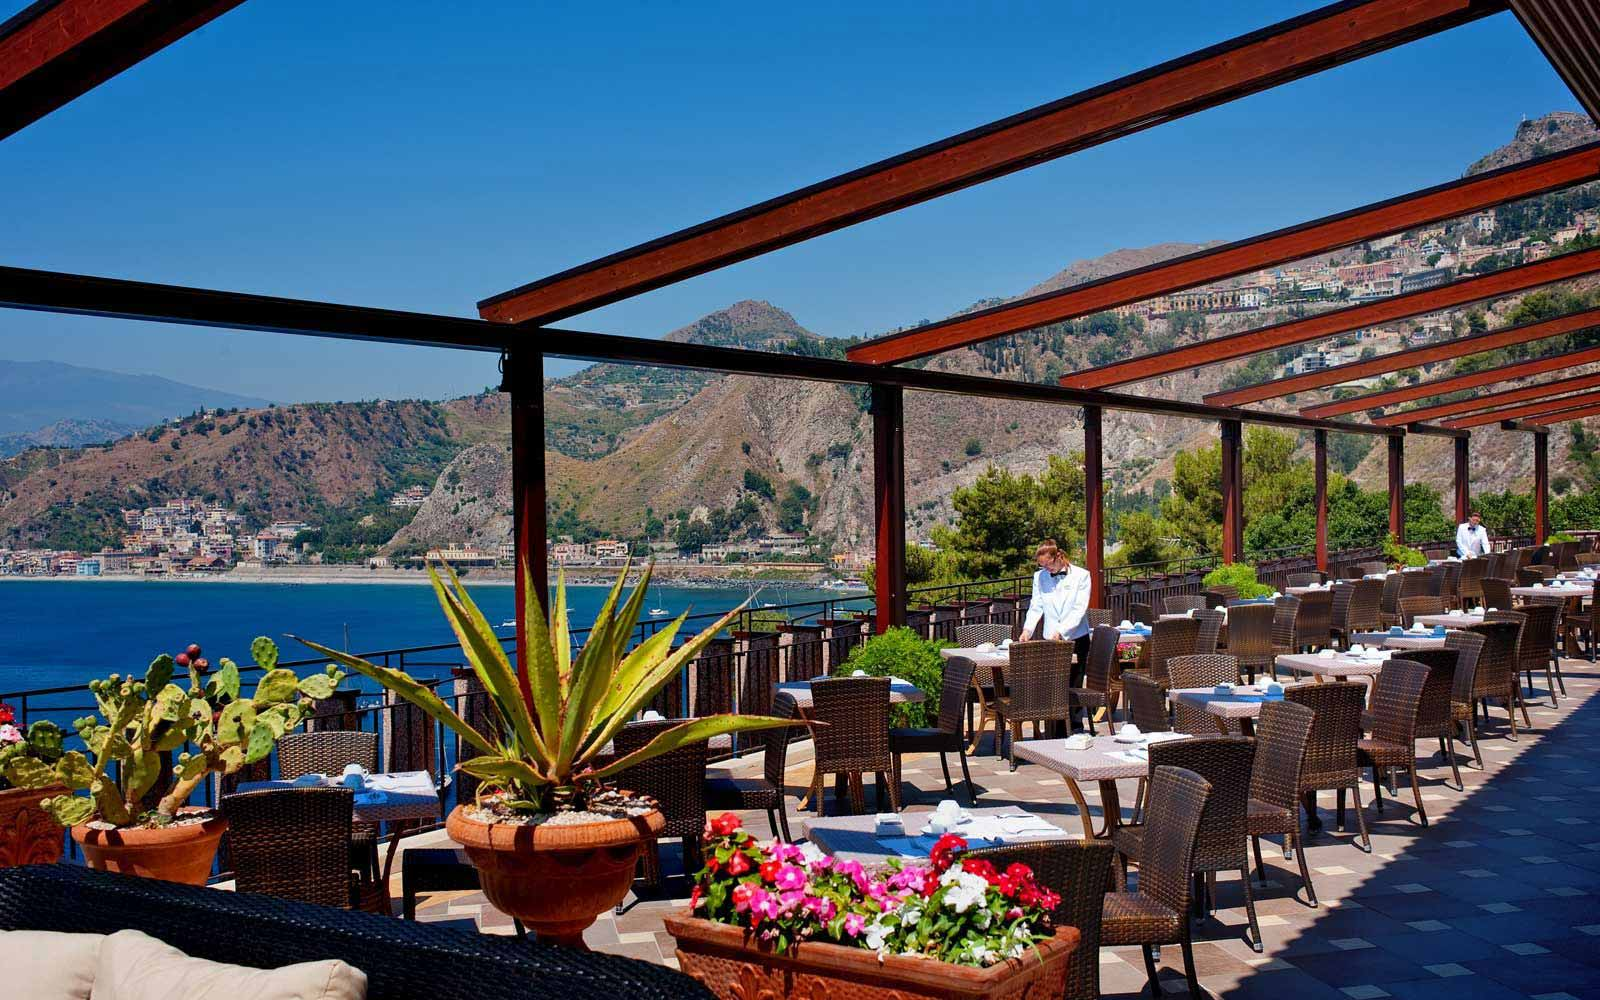 Terrace at Atahotel Capotaormina